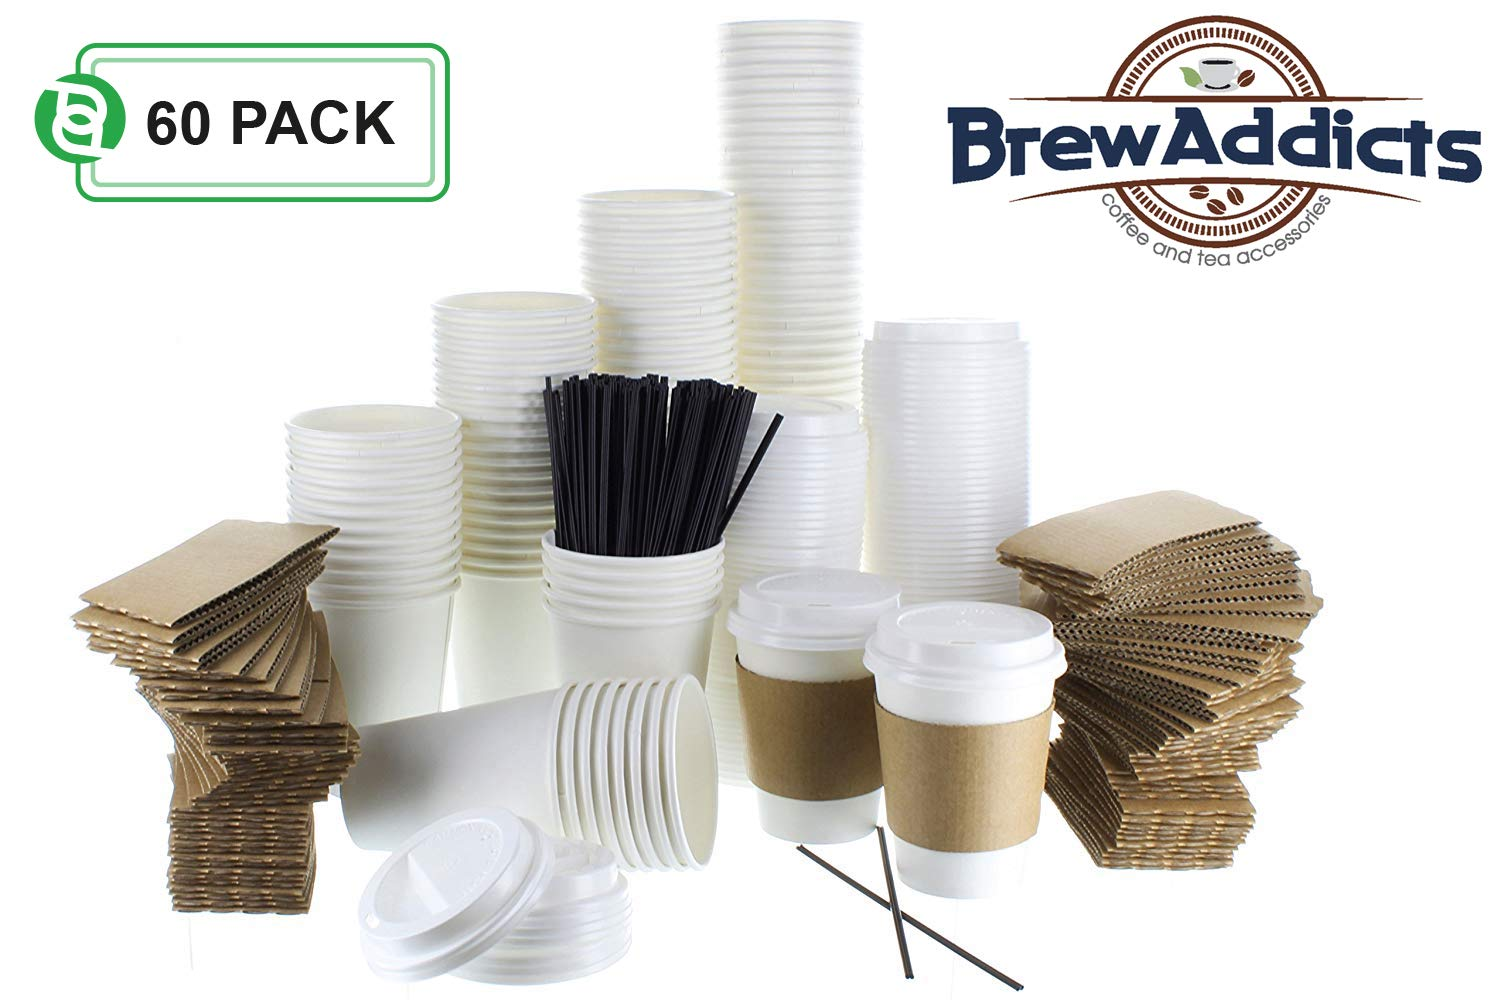 JUMBO Pack White Coffee Cups | White Insulated Disposable Hot Cups with Lids, Sleeves & Stirrers for Tea, Chocolate | Perfect for To-Go Travel Mug, Parties and More | Size 12 Ounce | 60 Count